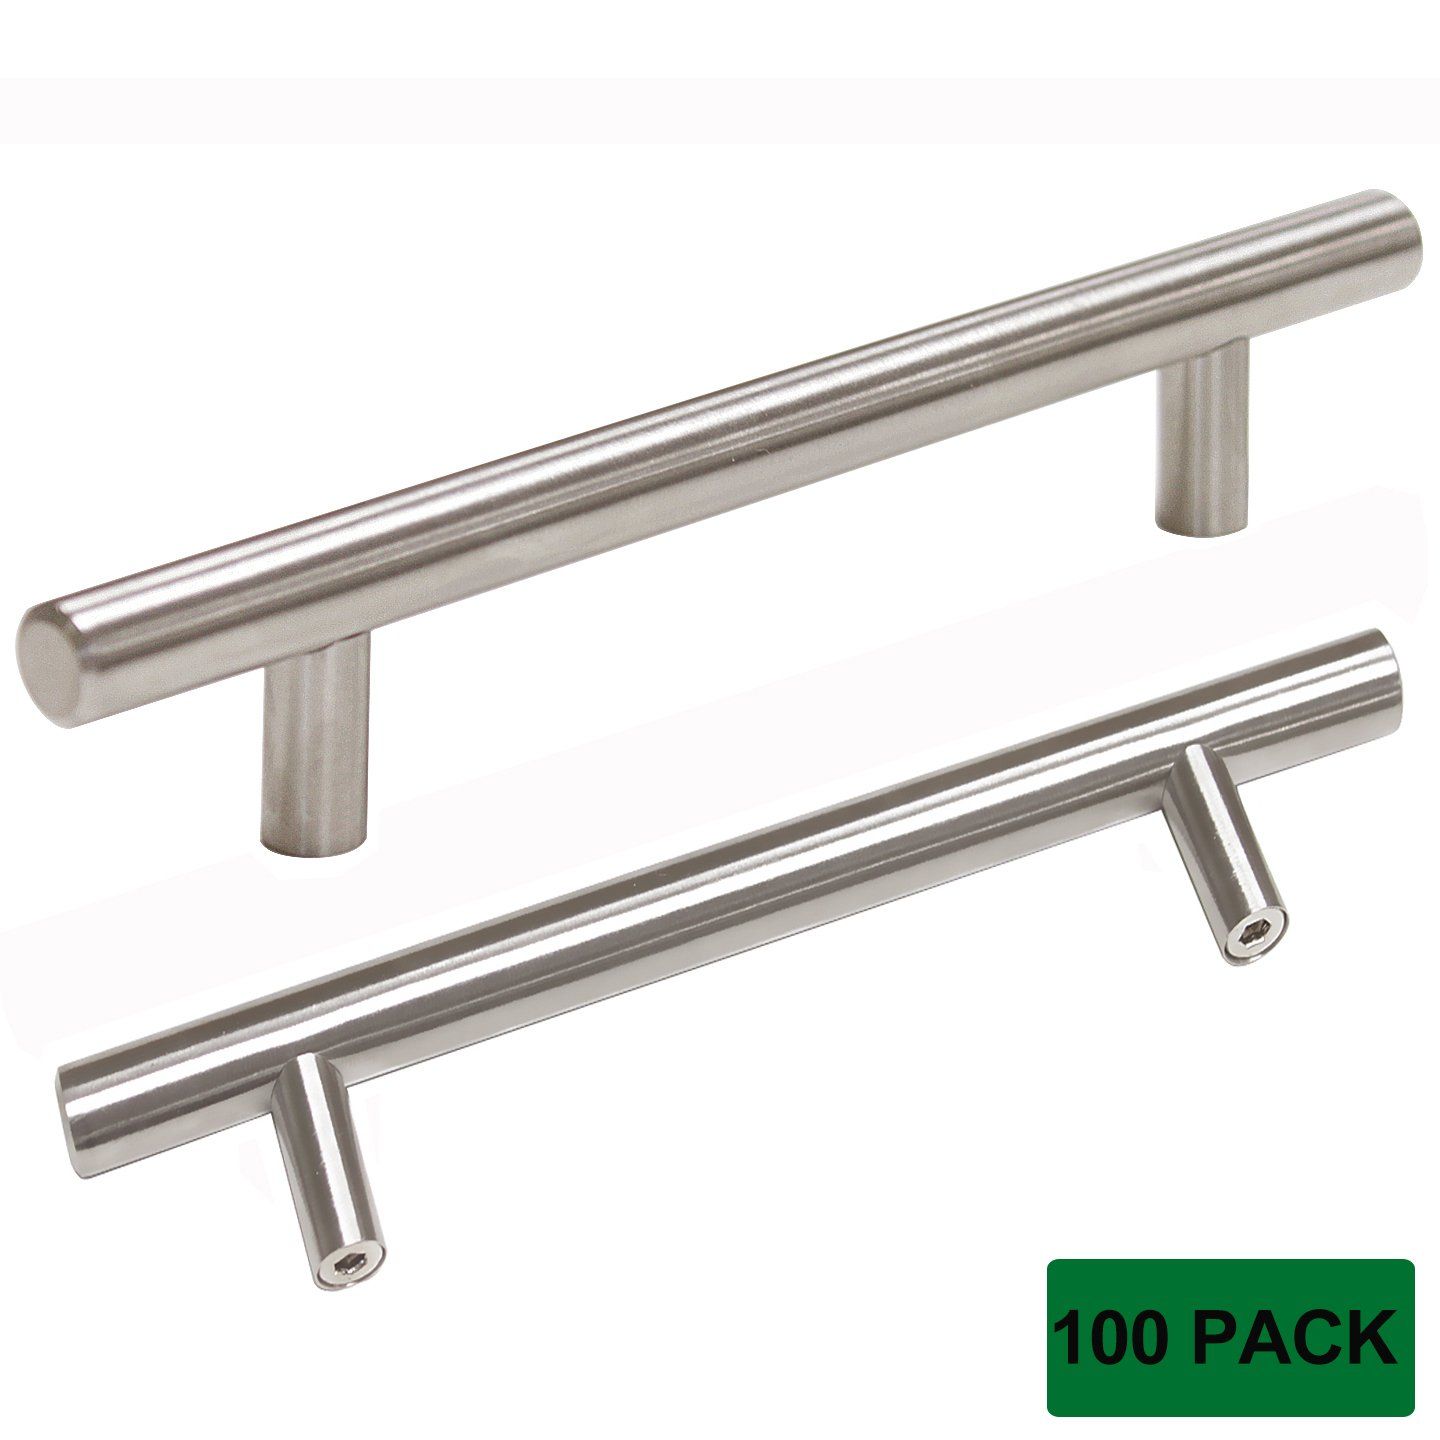 Probrico T Bar Cabinet Pulls Stainless Steel Kitchen Handles Wholesale (100Pack, CC:128mm)